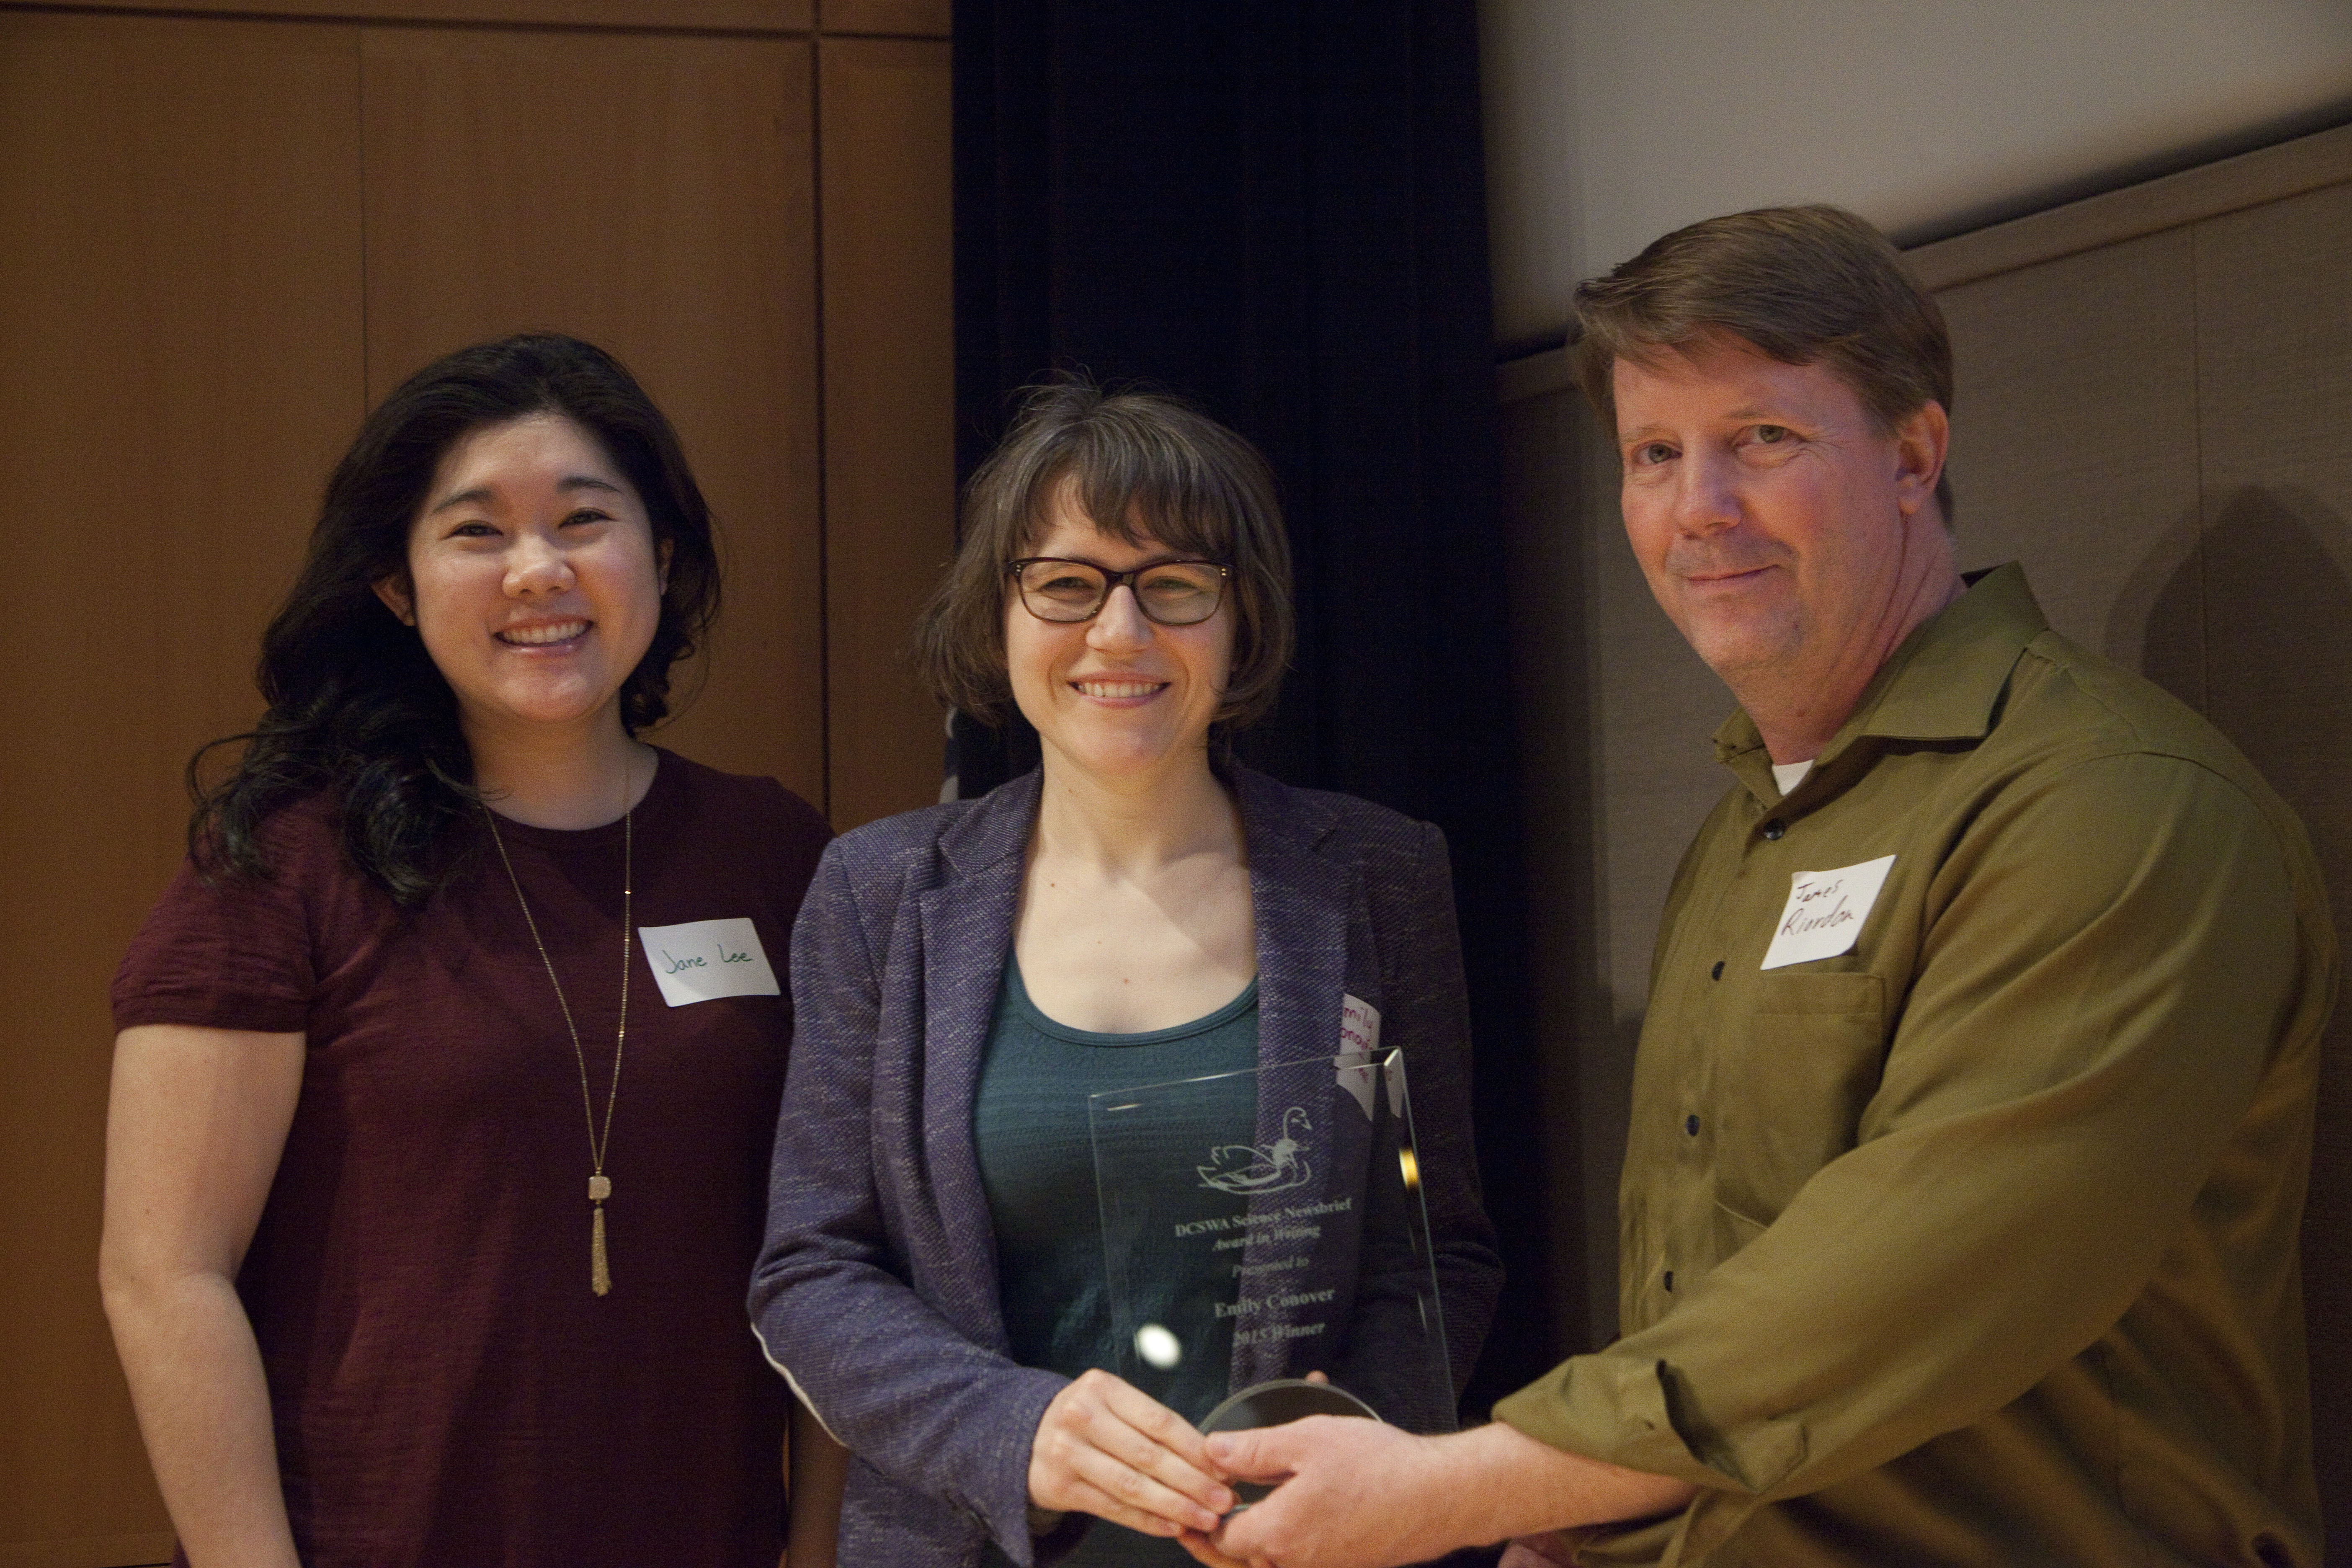 Emily Conover receives the 2015 writing award from judges Jane Lee and James Riordon. Photo by Rich Press